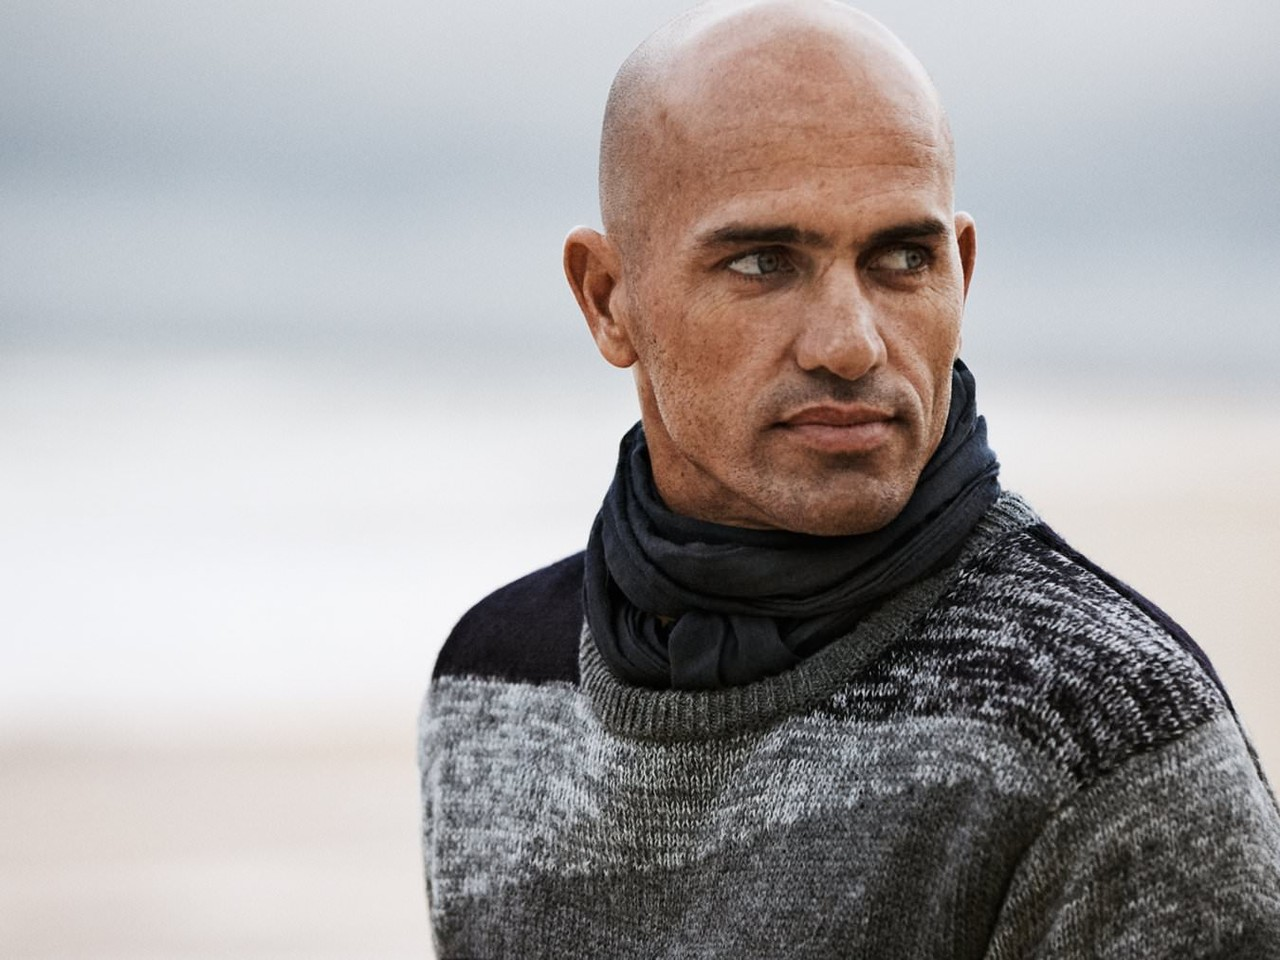 kelly-slater-mr-porter-3.jpg